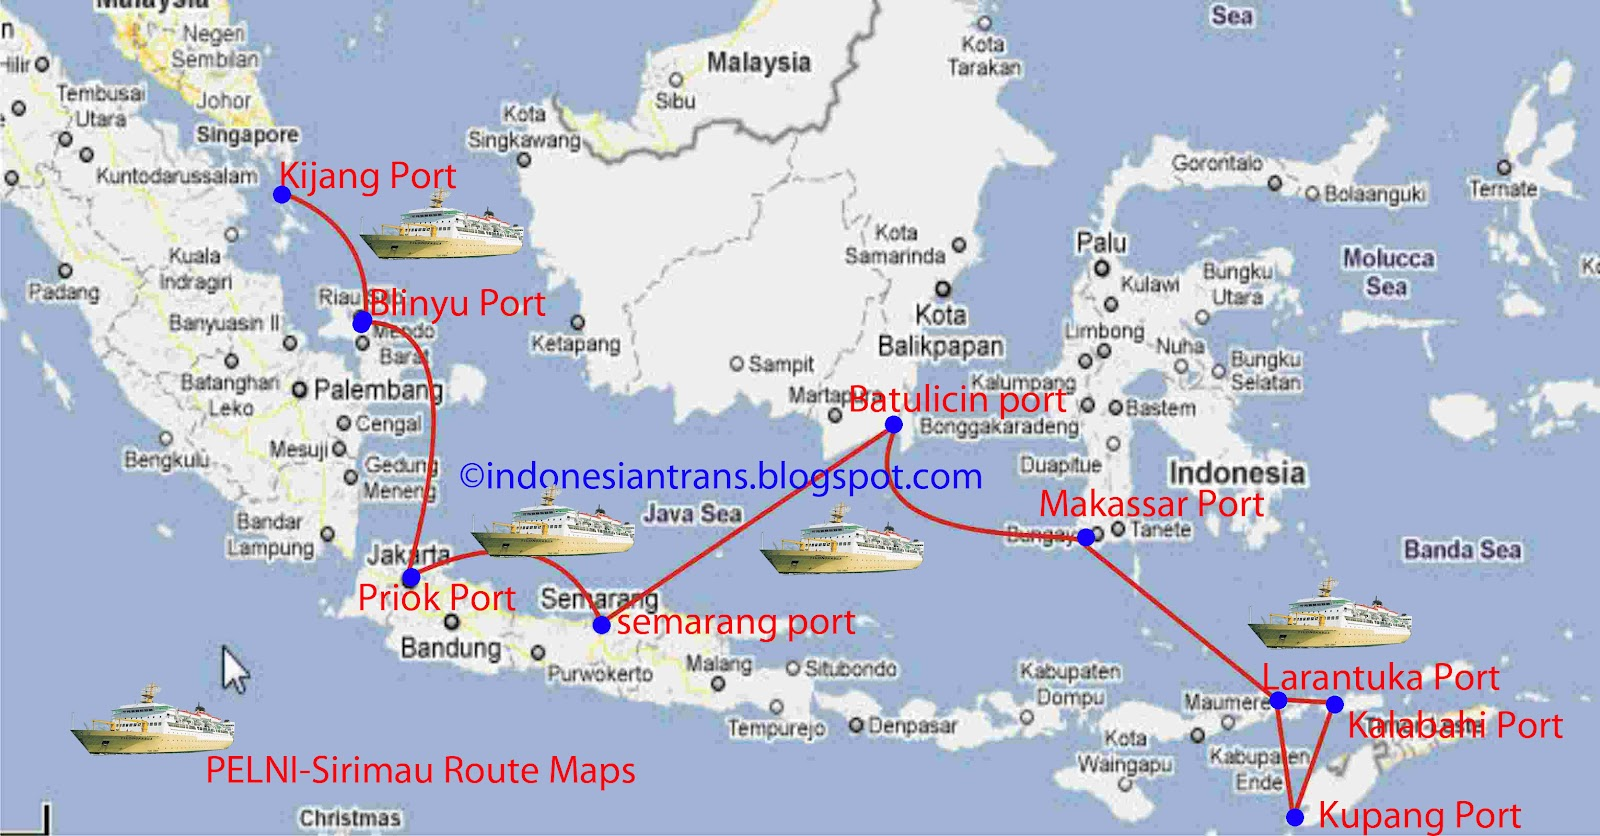 Routes Map Sirimau Ship Routes Map